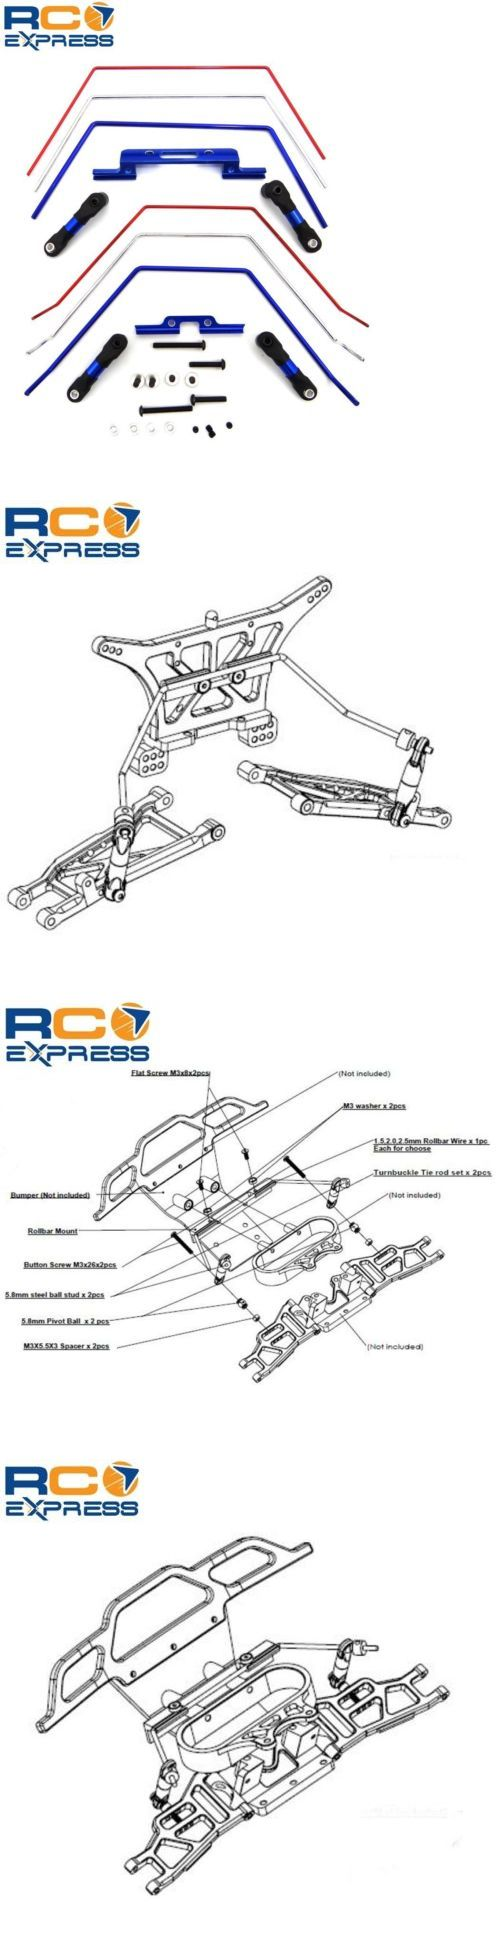 Suspension and Steering Parts 182199: Hot Racing Traxxas Slash 2Wd Front And Rear Wide Anti Roll Bar Sway Bar Te311slc -> BUY IT NOW ONLY: $32.88 on eBay!